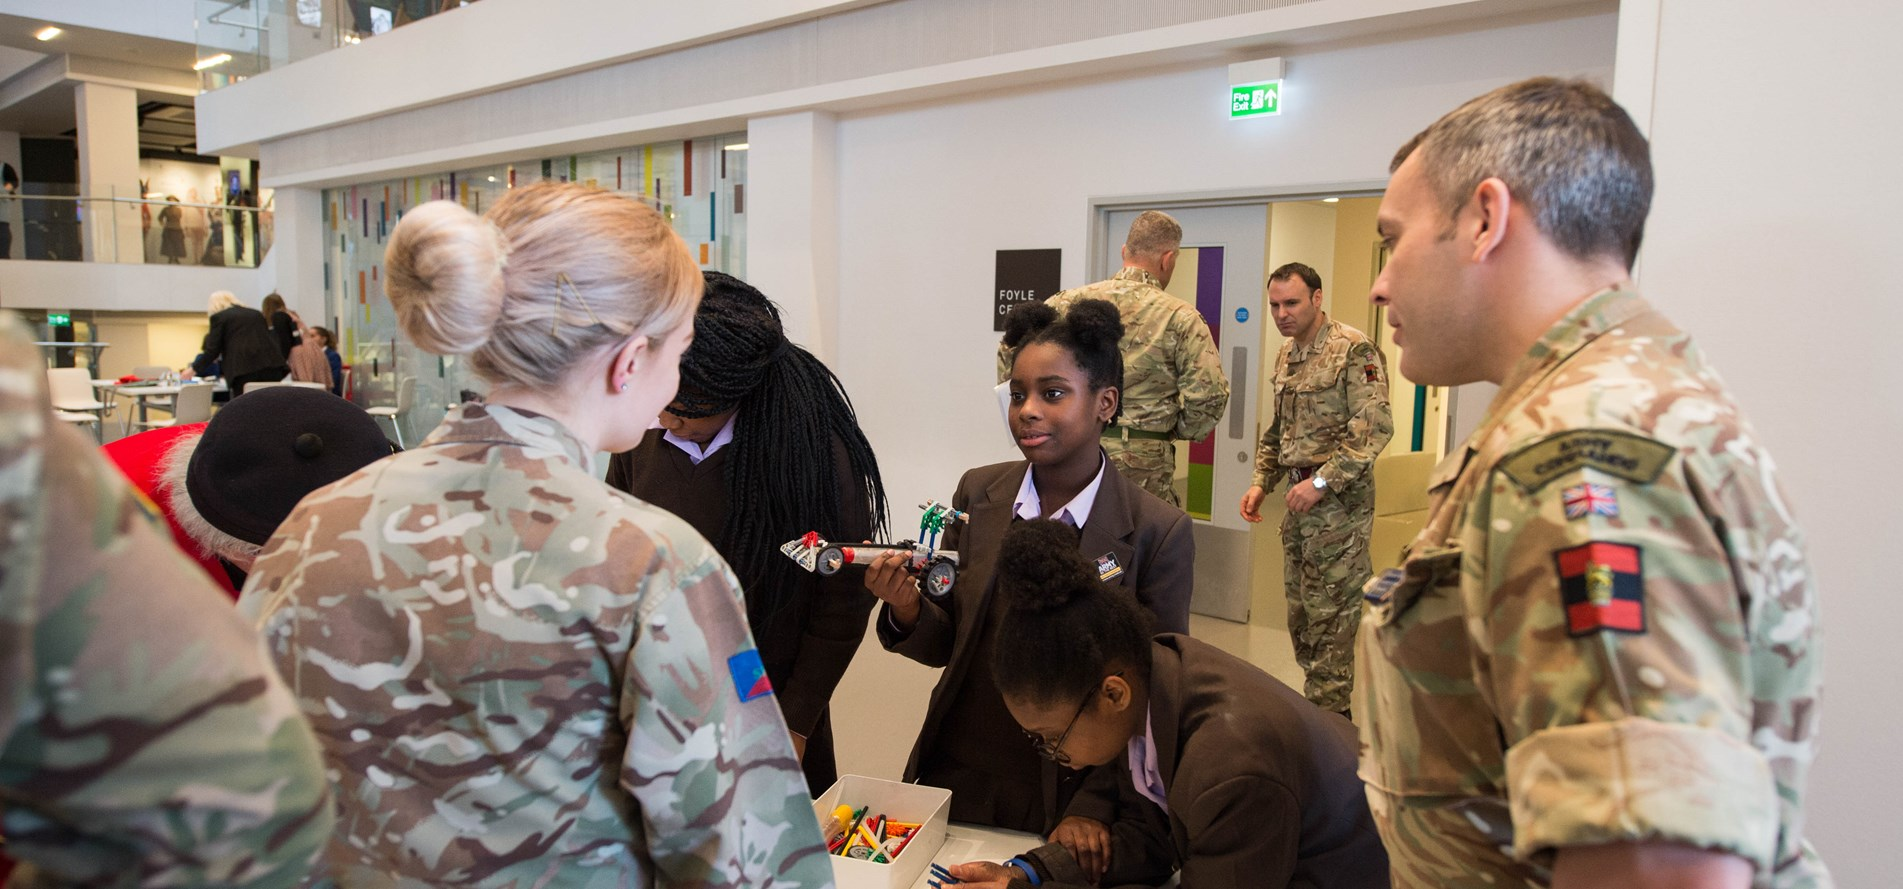 APOLOND-2019-007-0084-PR-STEM Day At The NAM.JPG